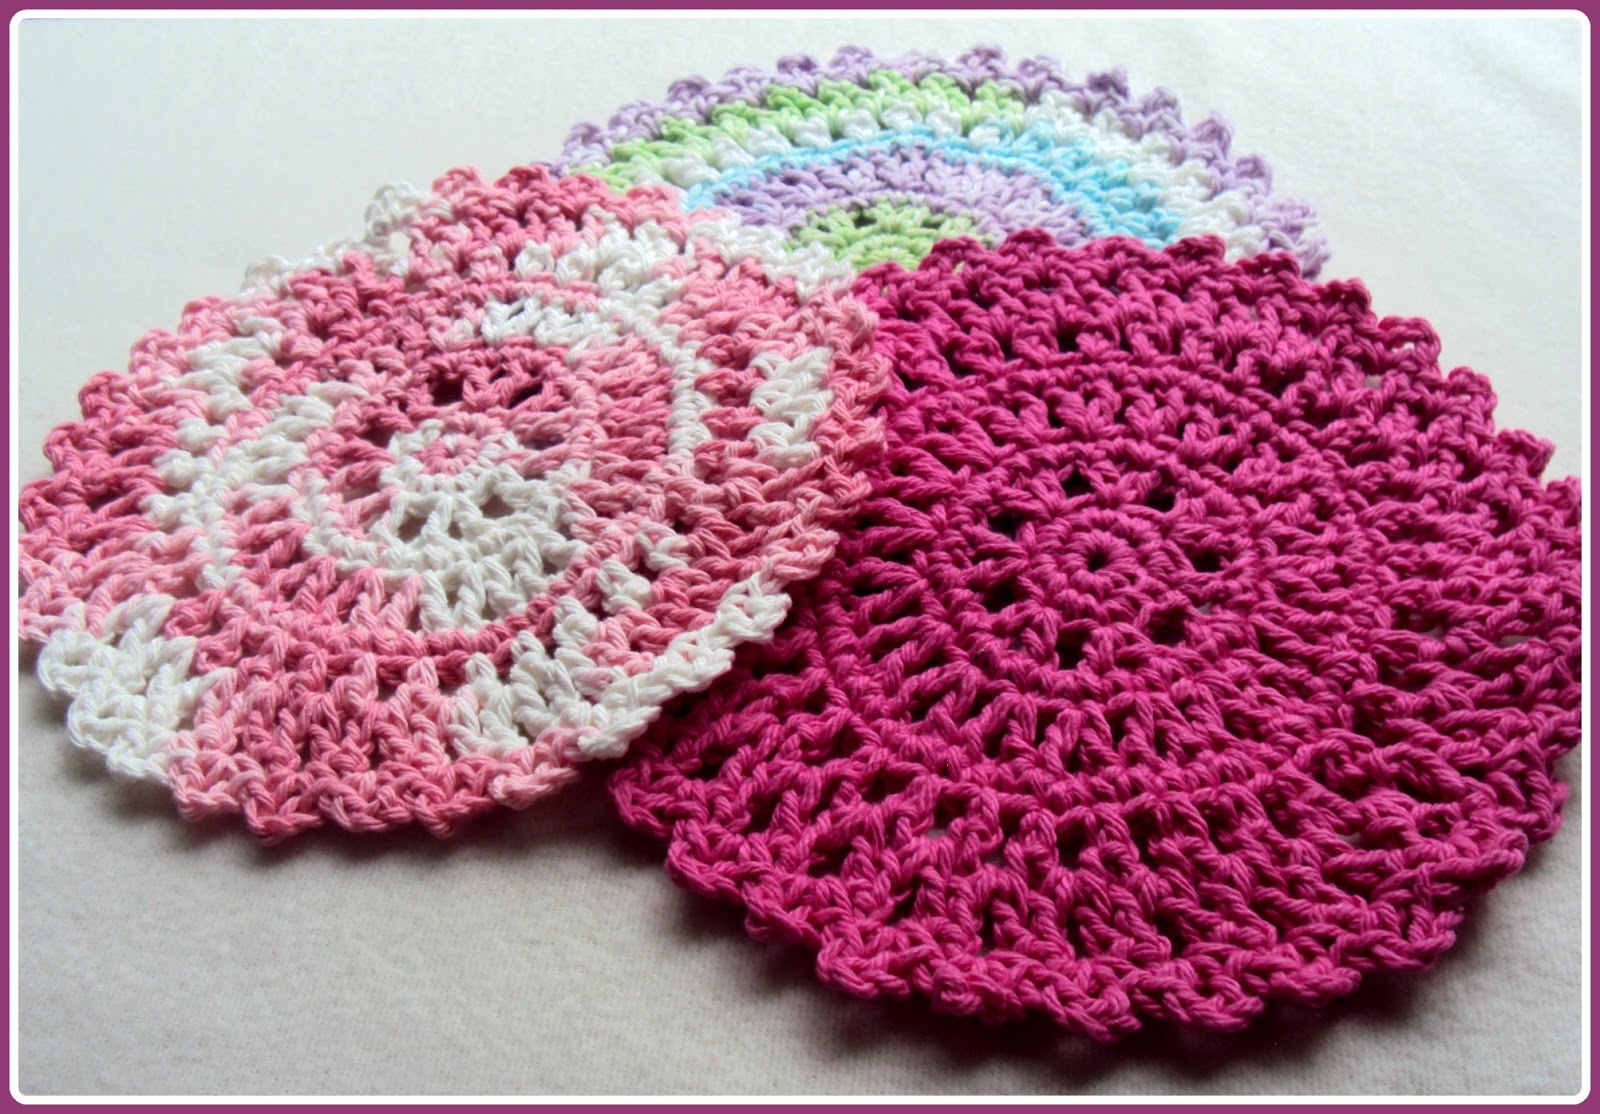 Crochet Patterns And Yarn : ... up quickly and beautifully when using both acrylic or cotton yarns